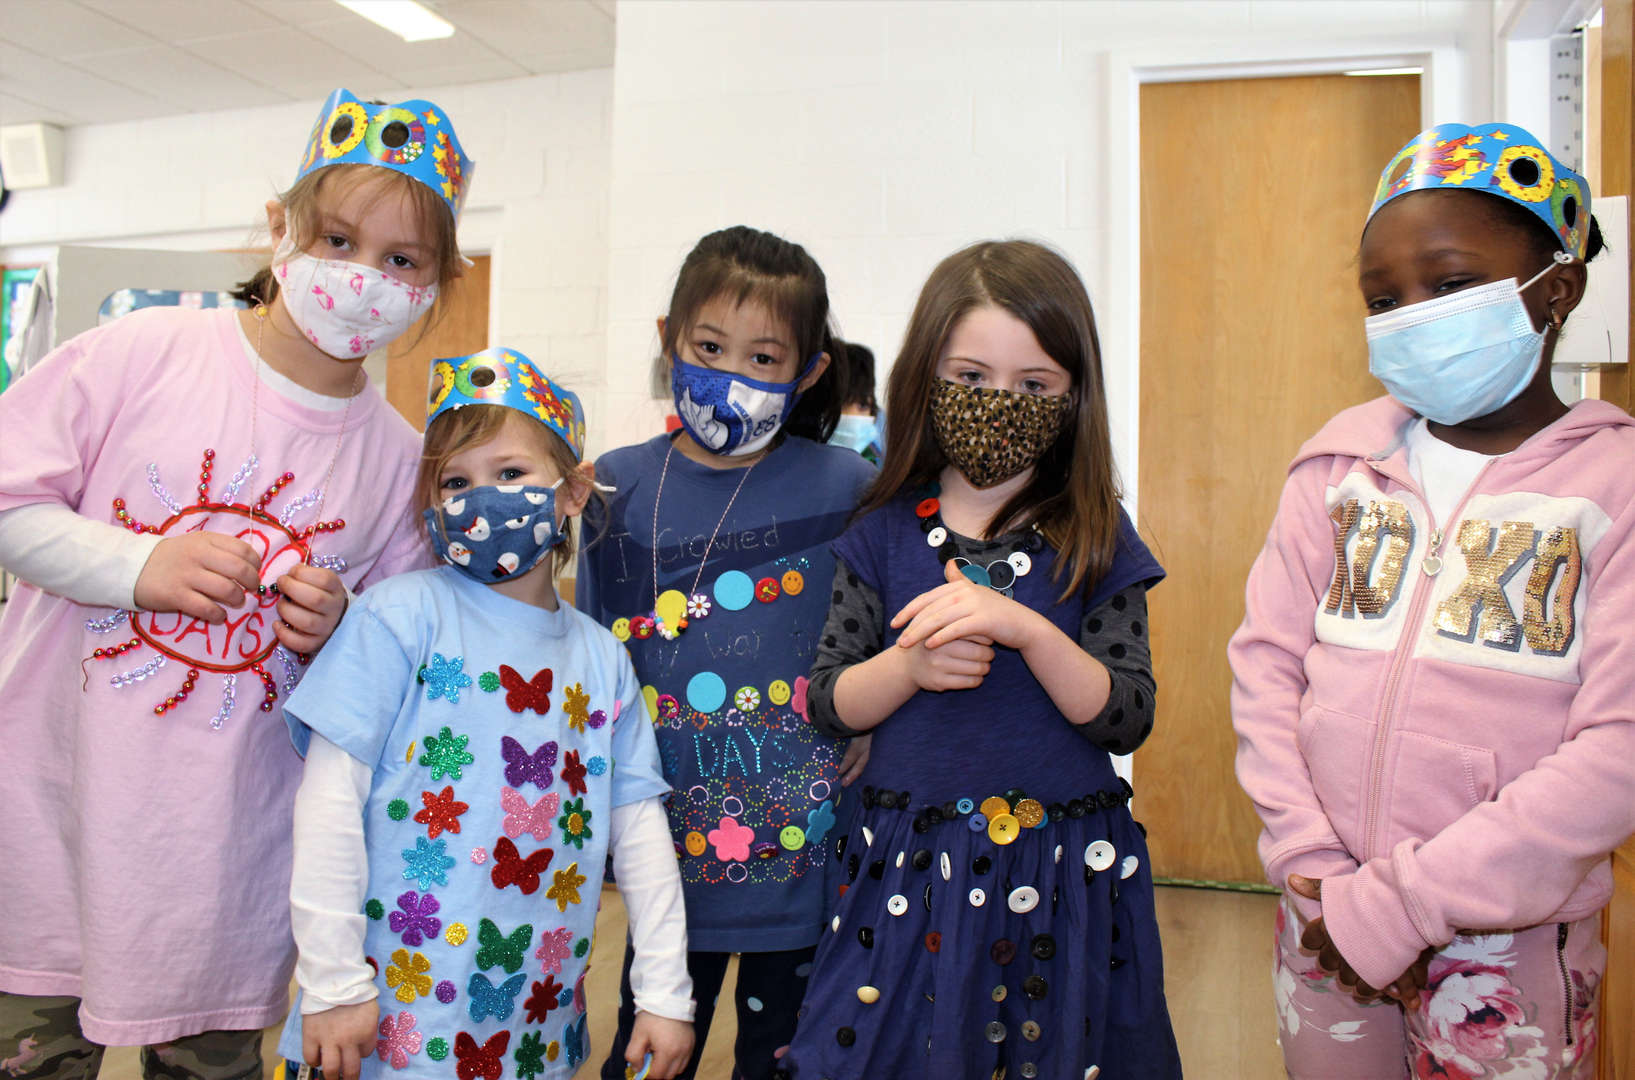 Kindergarteners wearing special shirts for the 100th day of school.